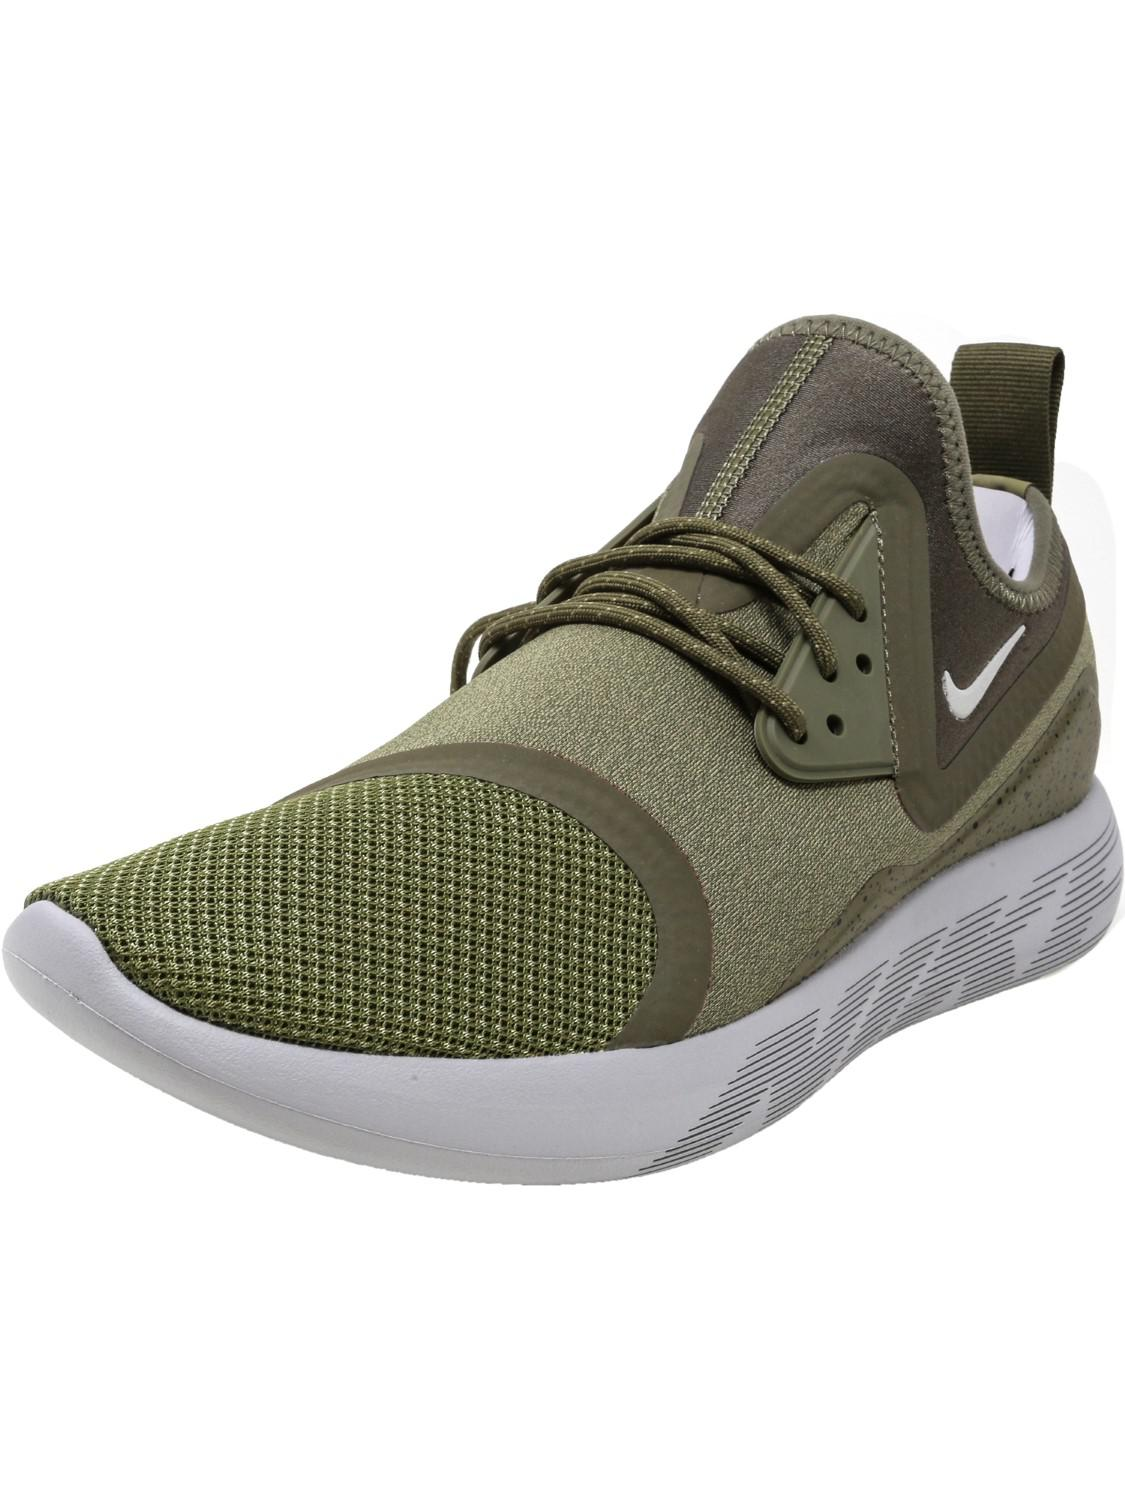 901ecff338d Lyst - Nike Lunarcharge Essential Ankle-high Fabric Running Shoe ...